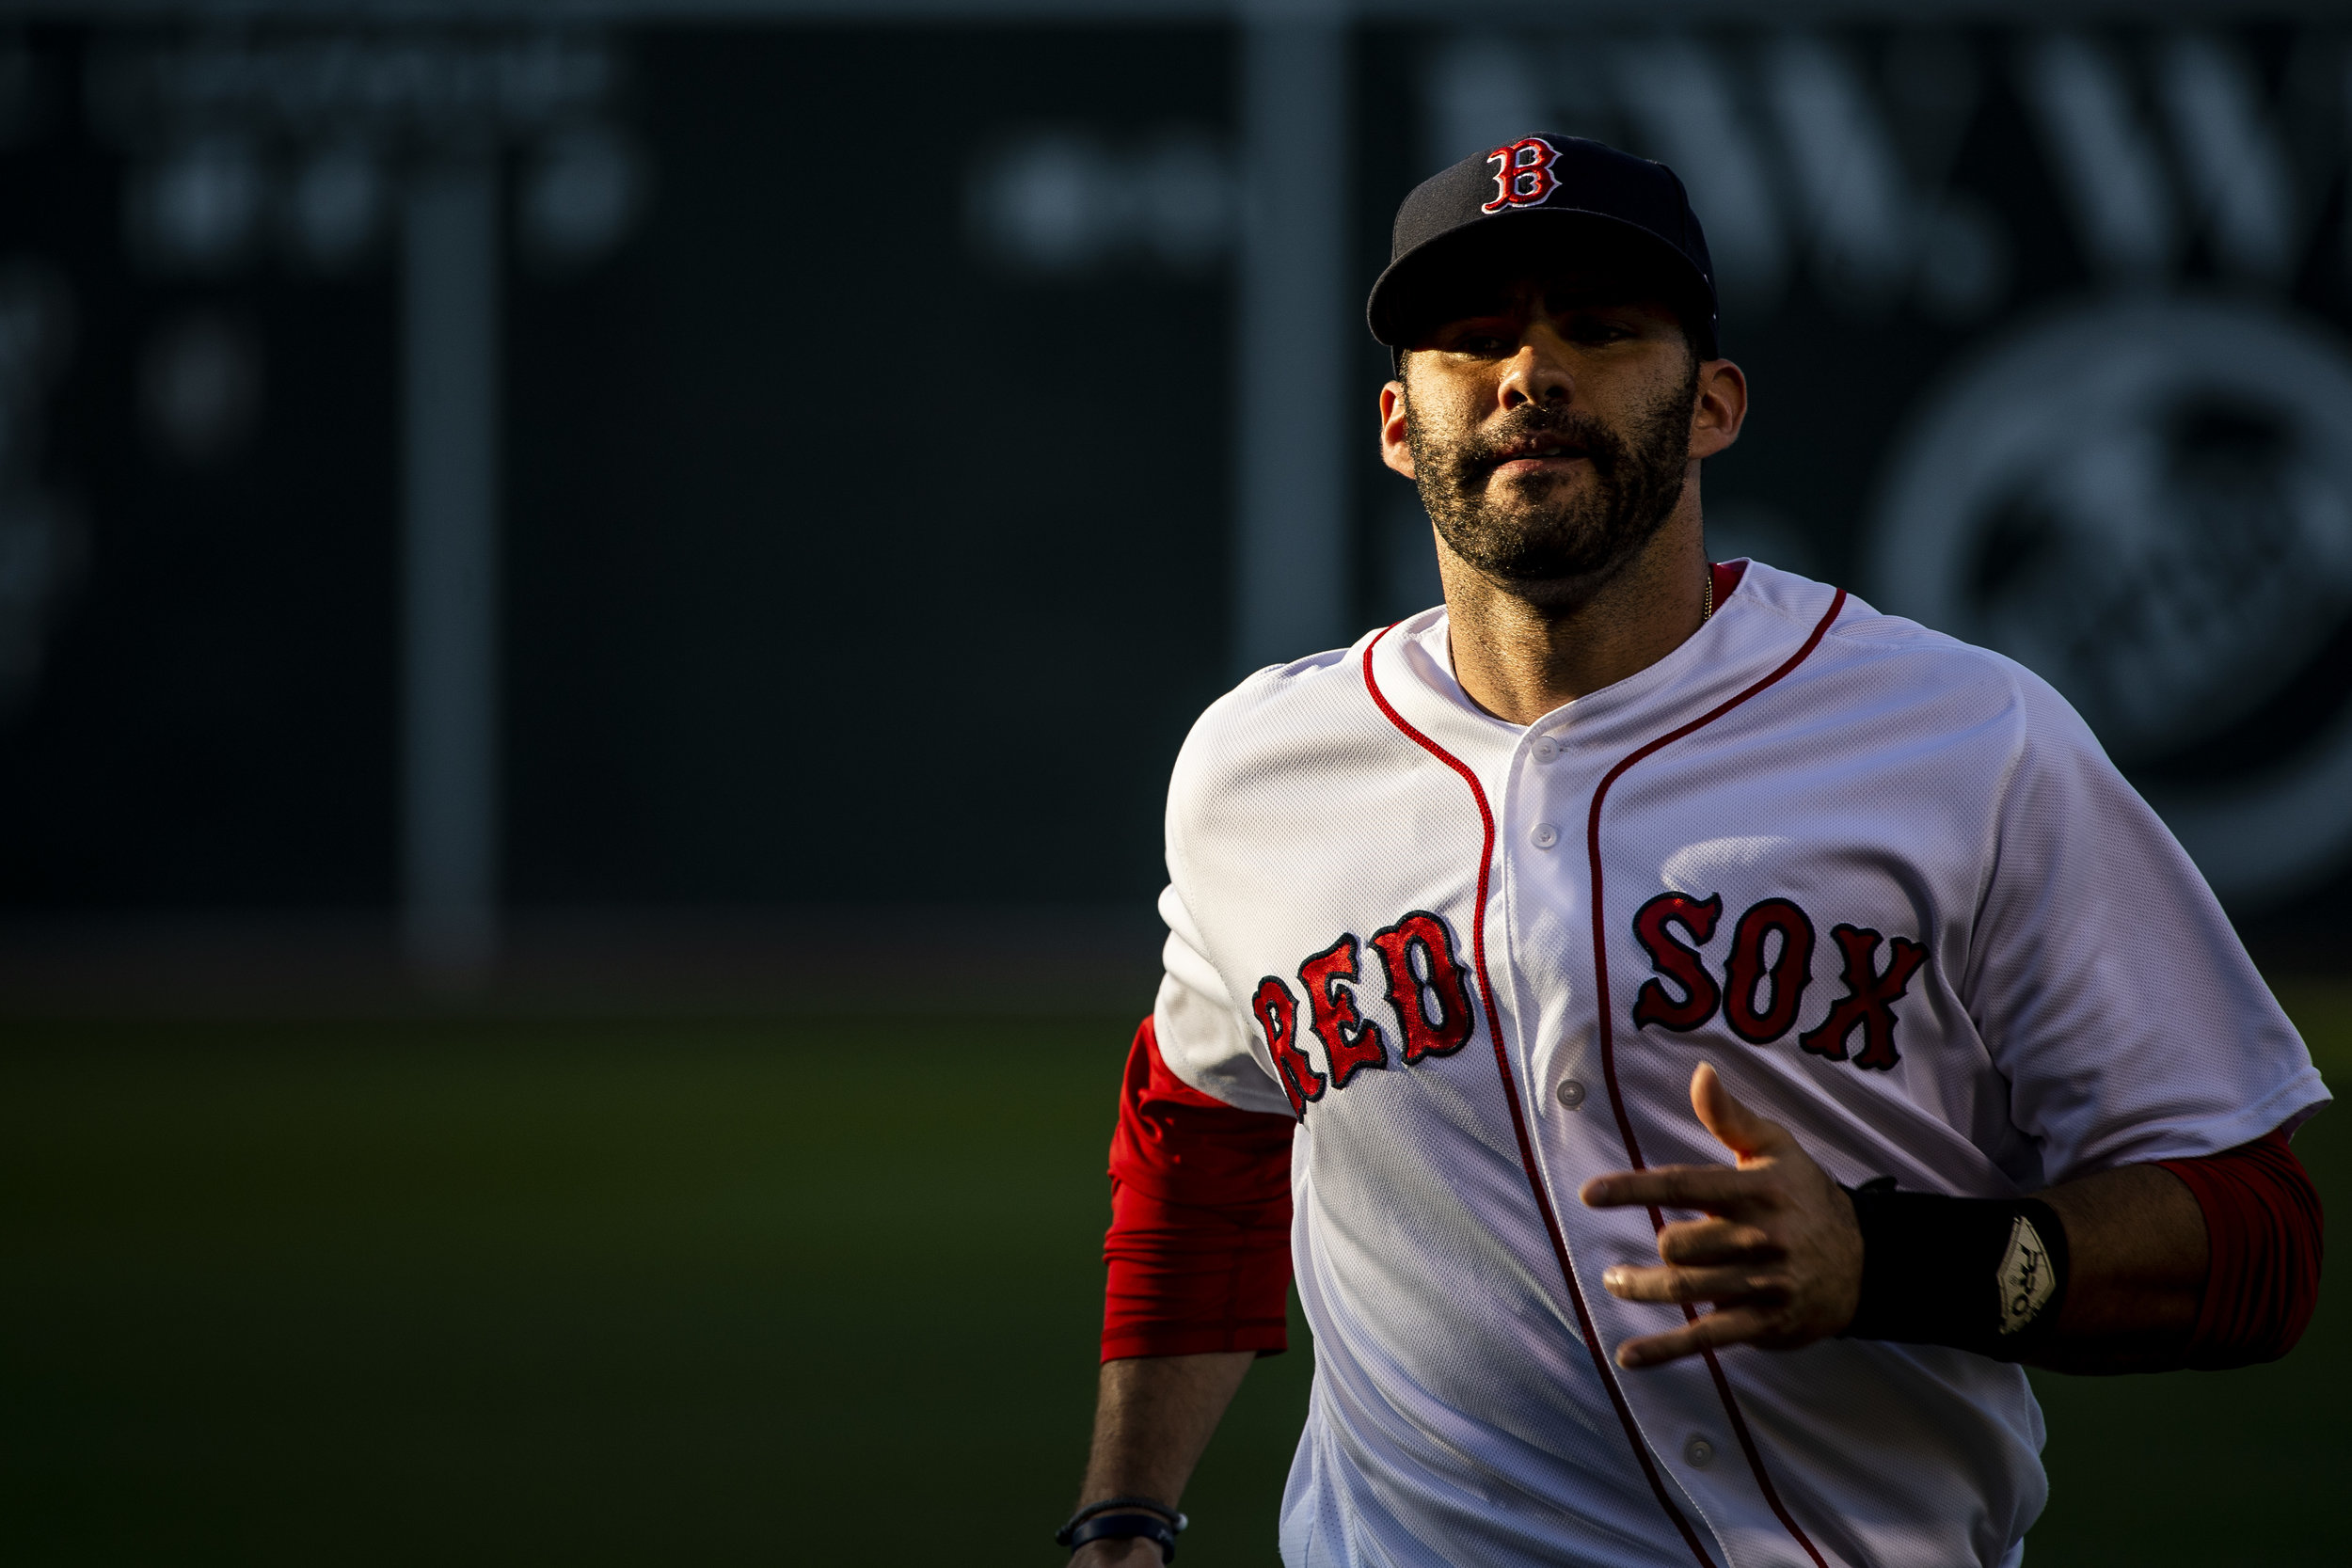 July 8, 2018, Boston, MA: Boston Red Sox outfielder J.D. Martinez jogs to warms up before the Boston Red Sox face the Texas Rangers Fenway Park in Boston, Massachusetts on Monday, July 9, 2018. (Photo by Matthew Thomas/Boston Red Sox)